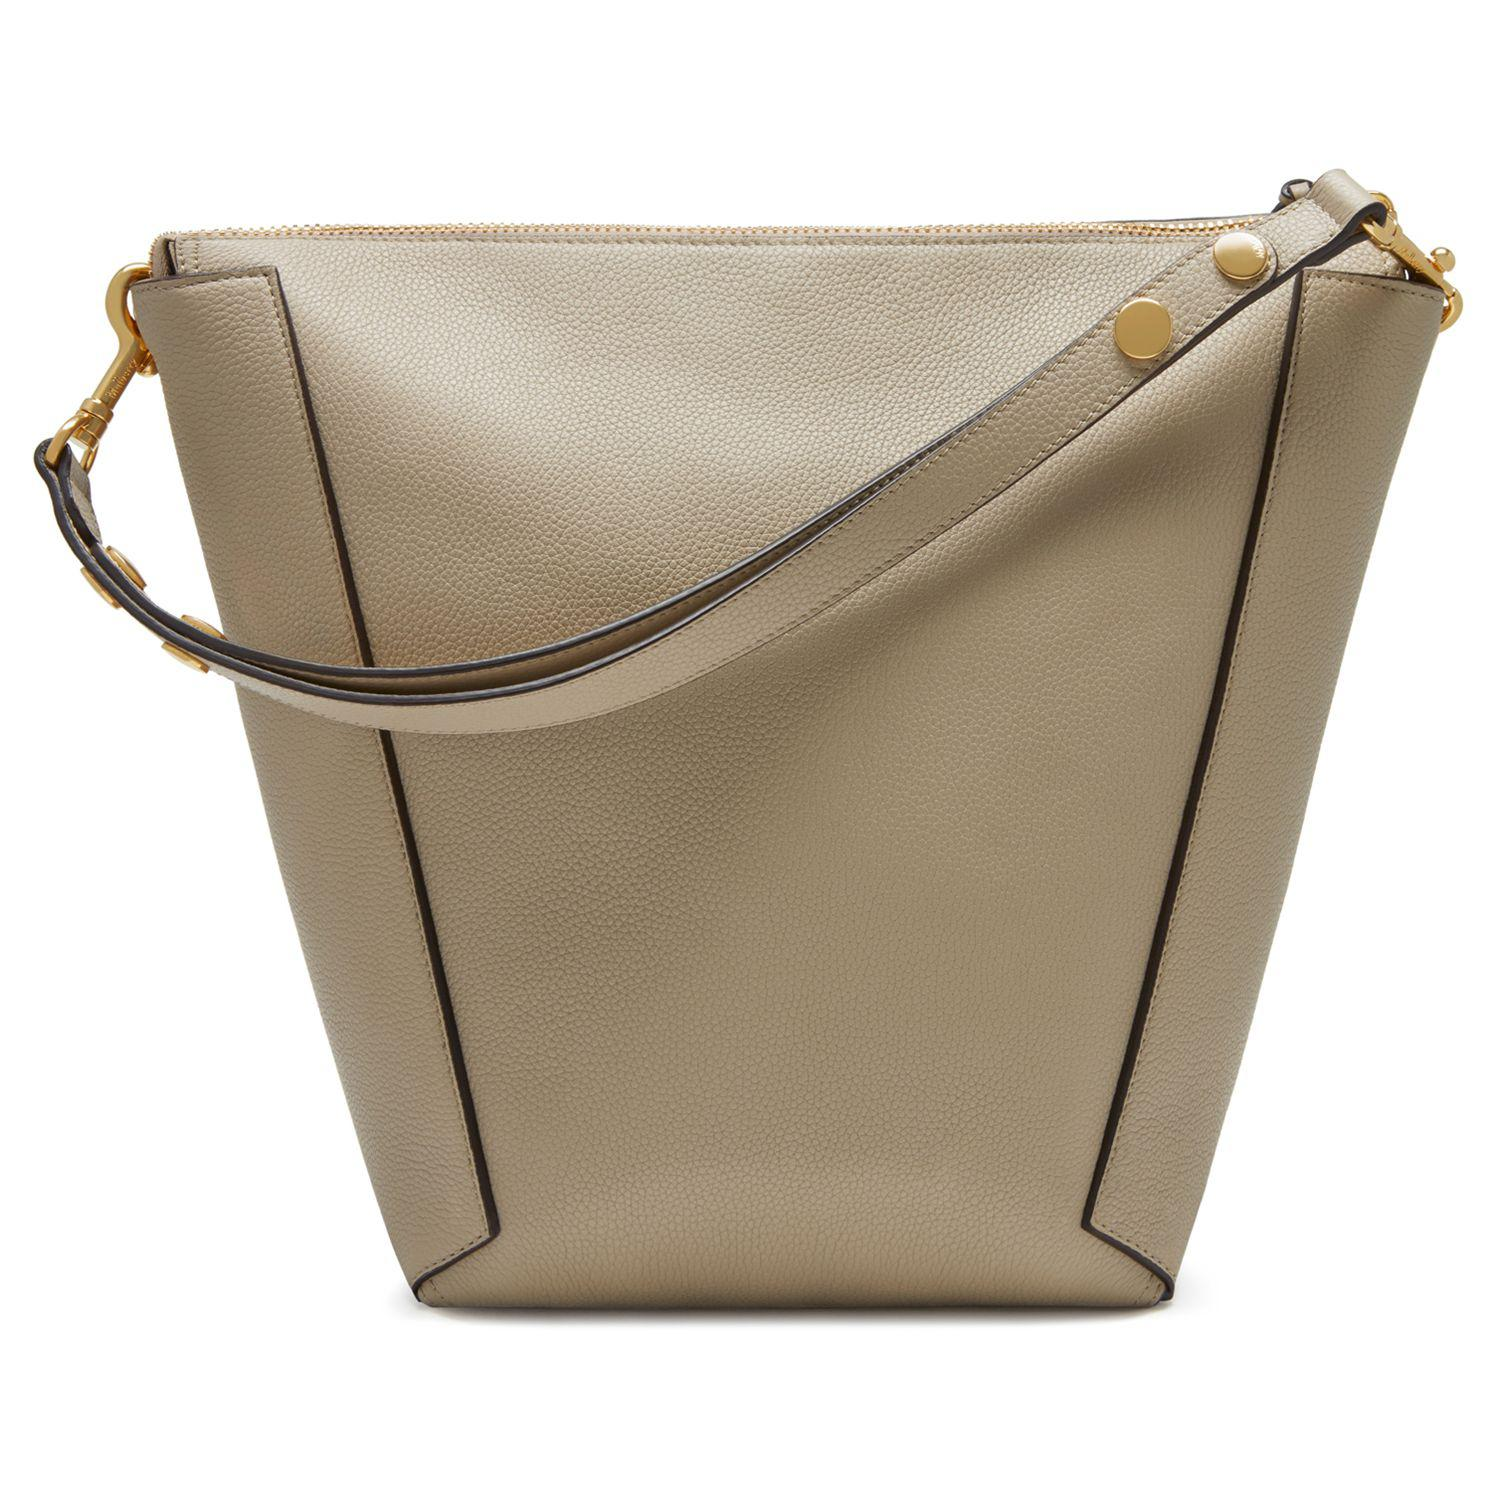 John Lewis Mulberry Camden Classic Grain Leather Hobo Bag in Natural ... 50a104c6a3d76